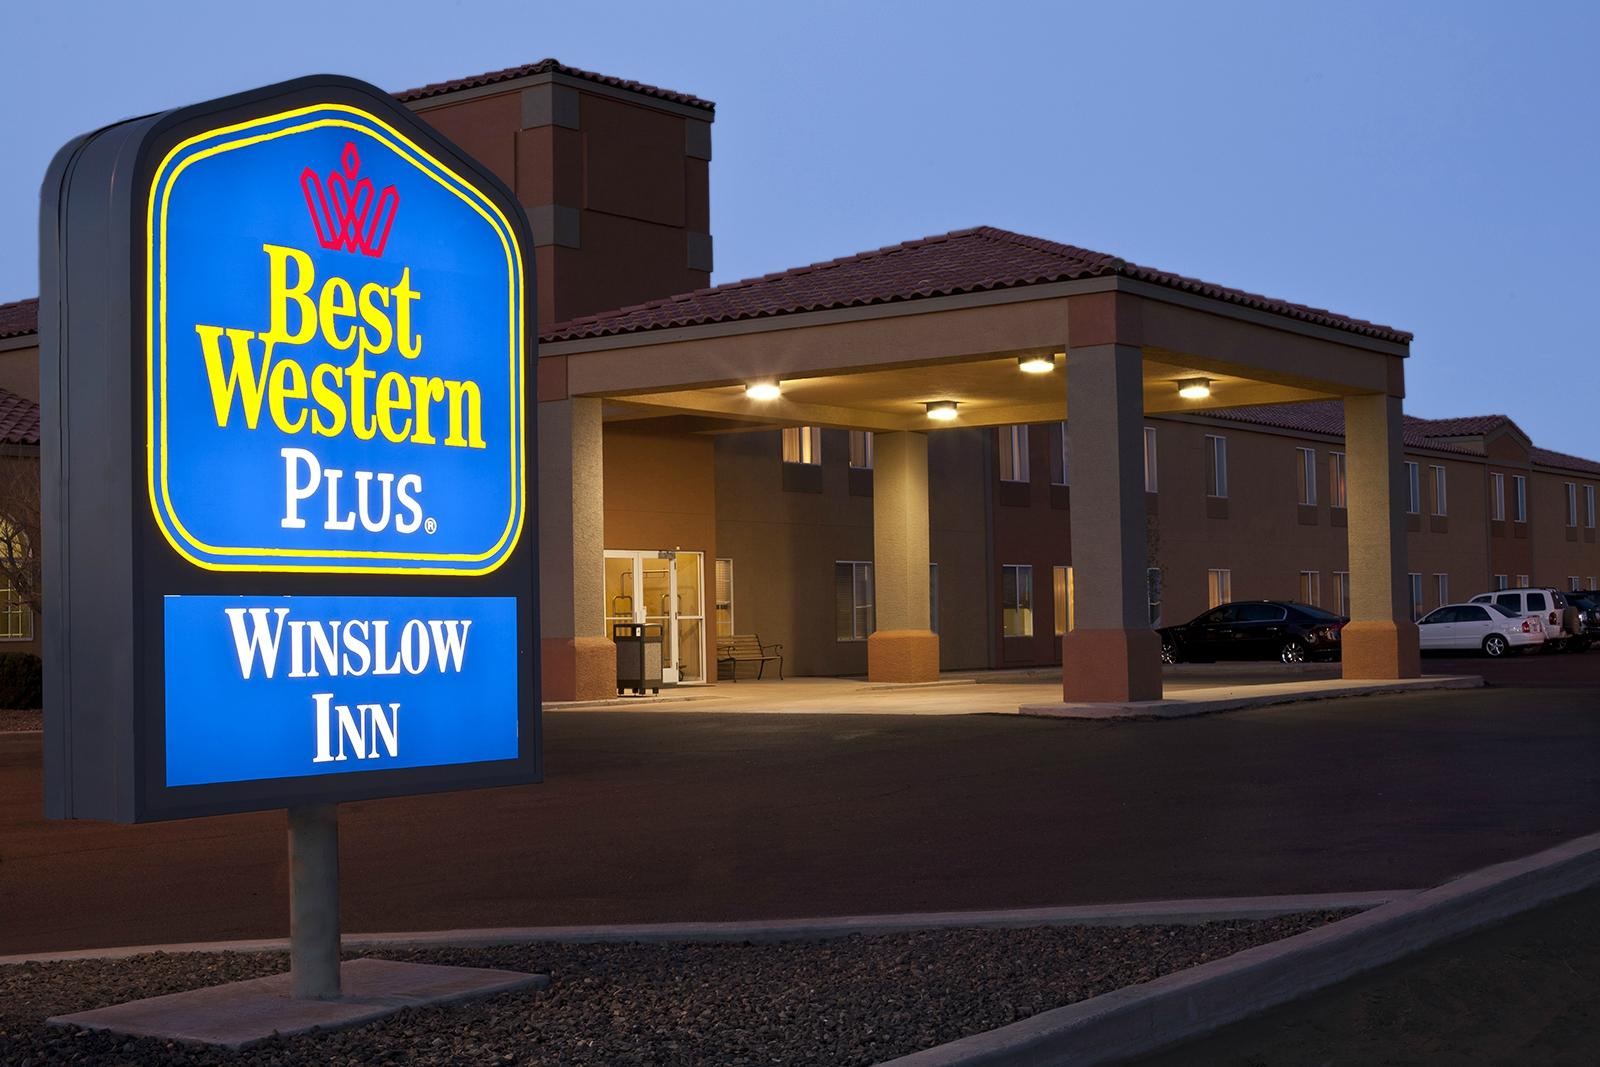 BEST WESTERN PLUS Winslow Inn